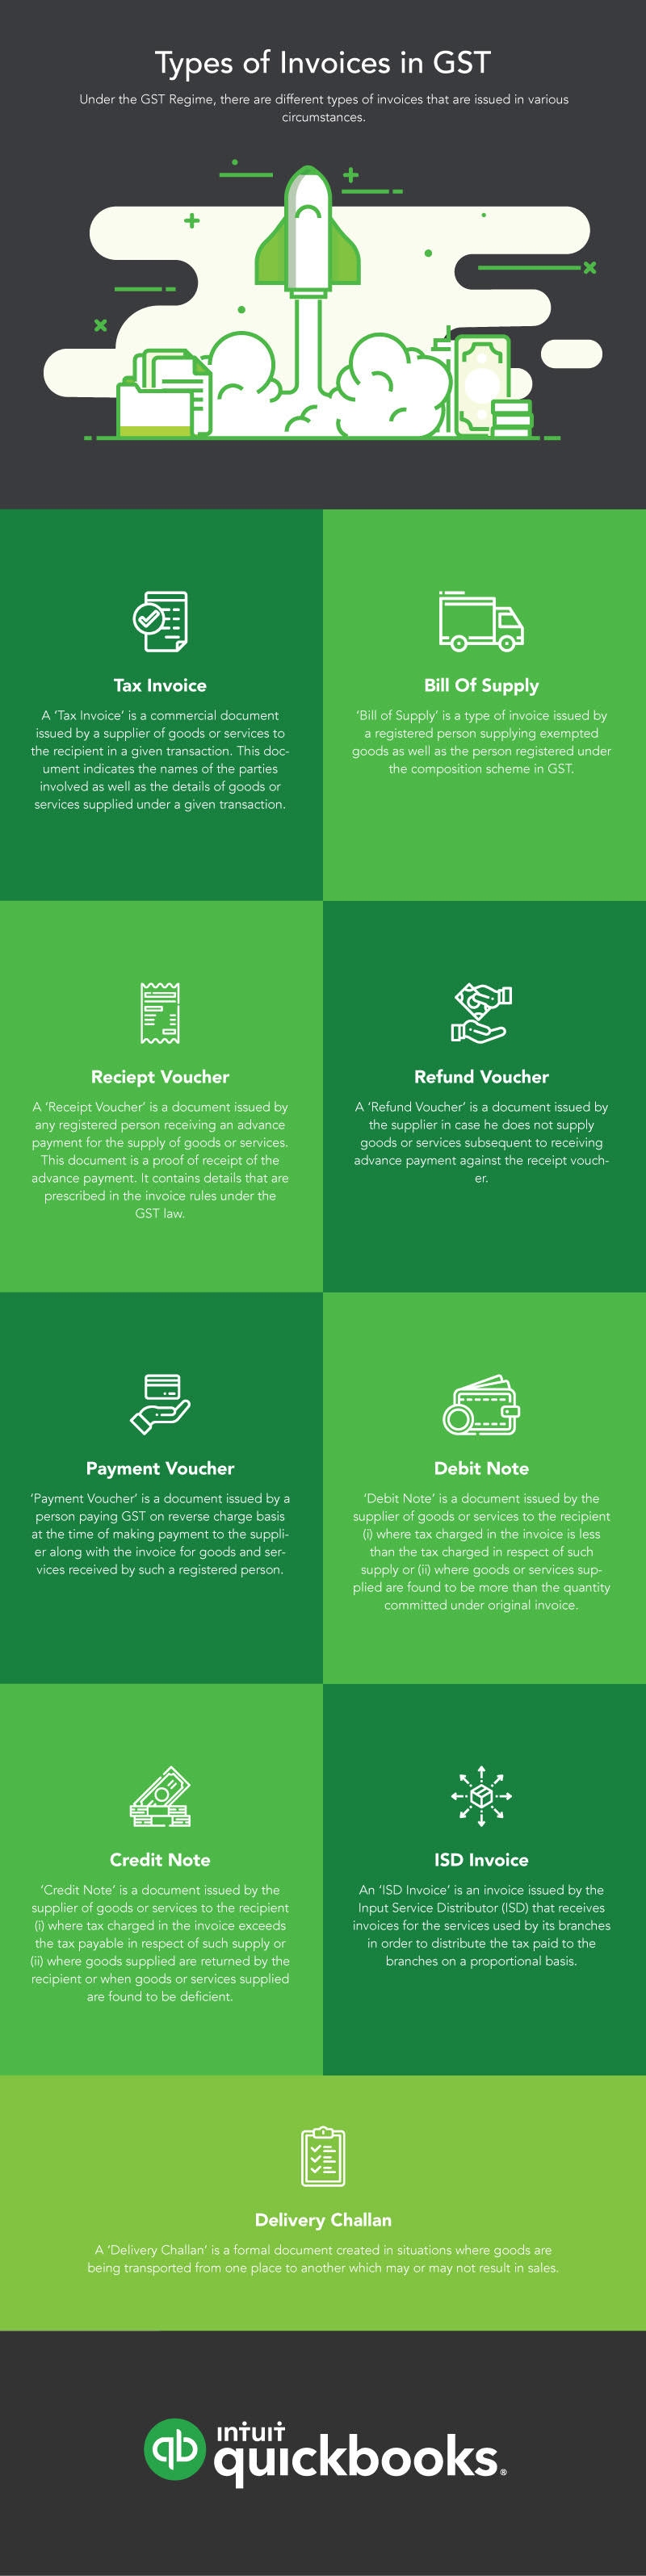 TYPES OF GST INVOICES